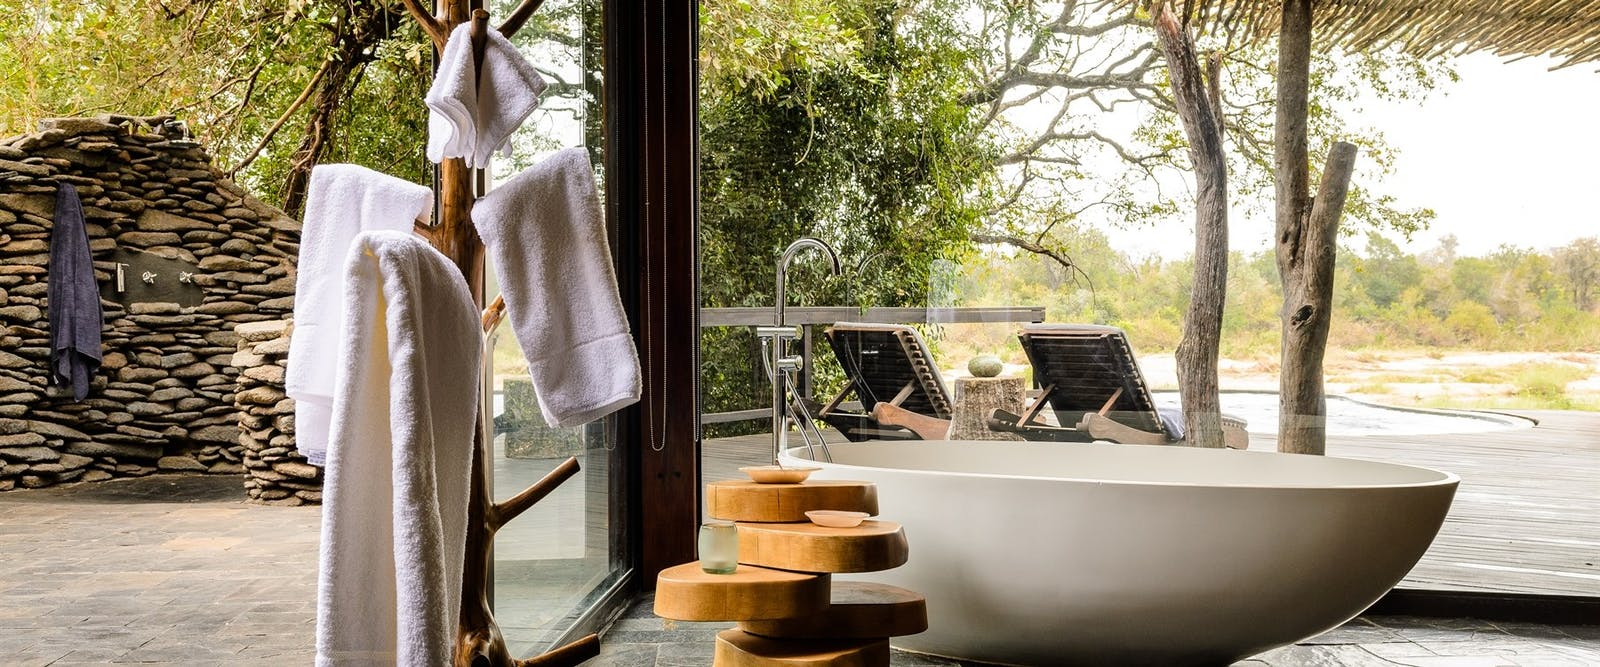 Outdoors Bath At Singita Pamushana Lodge